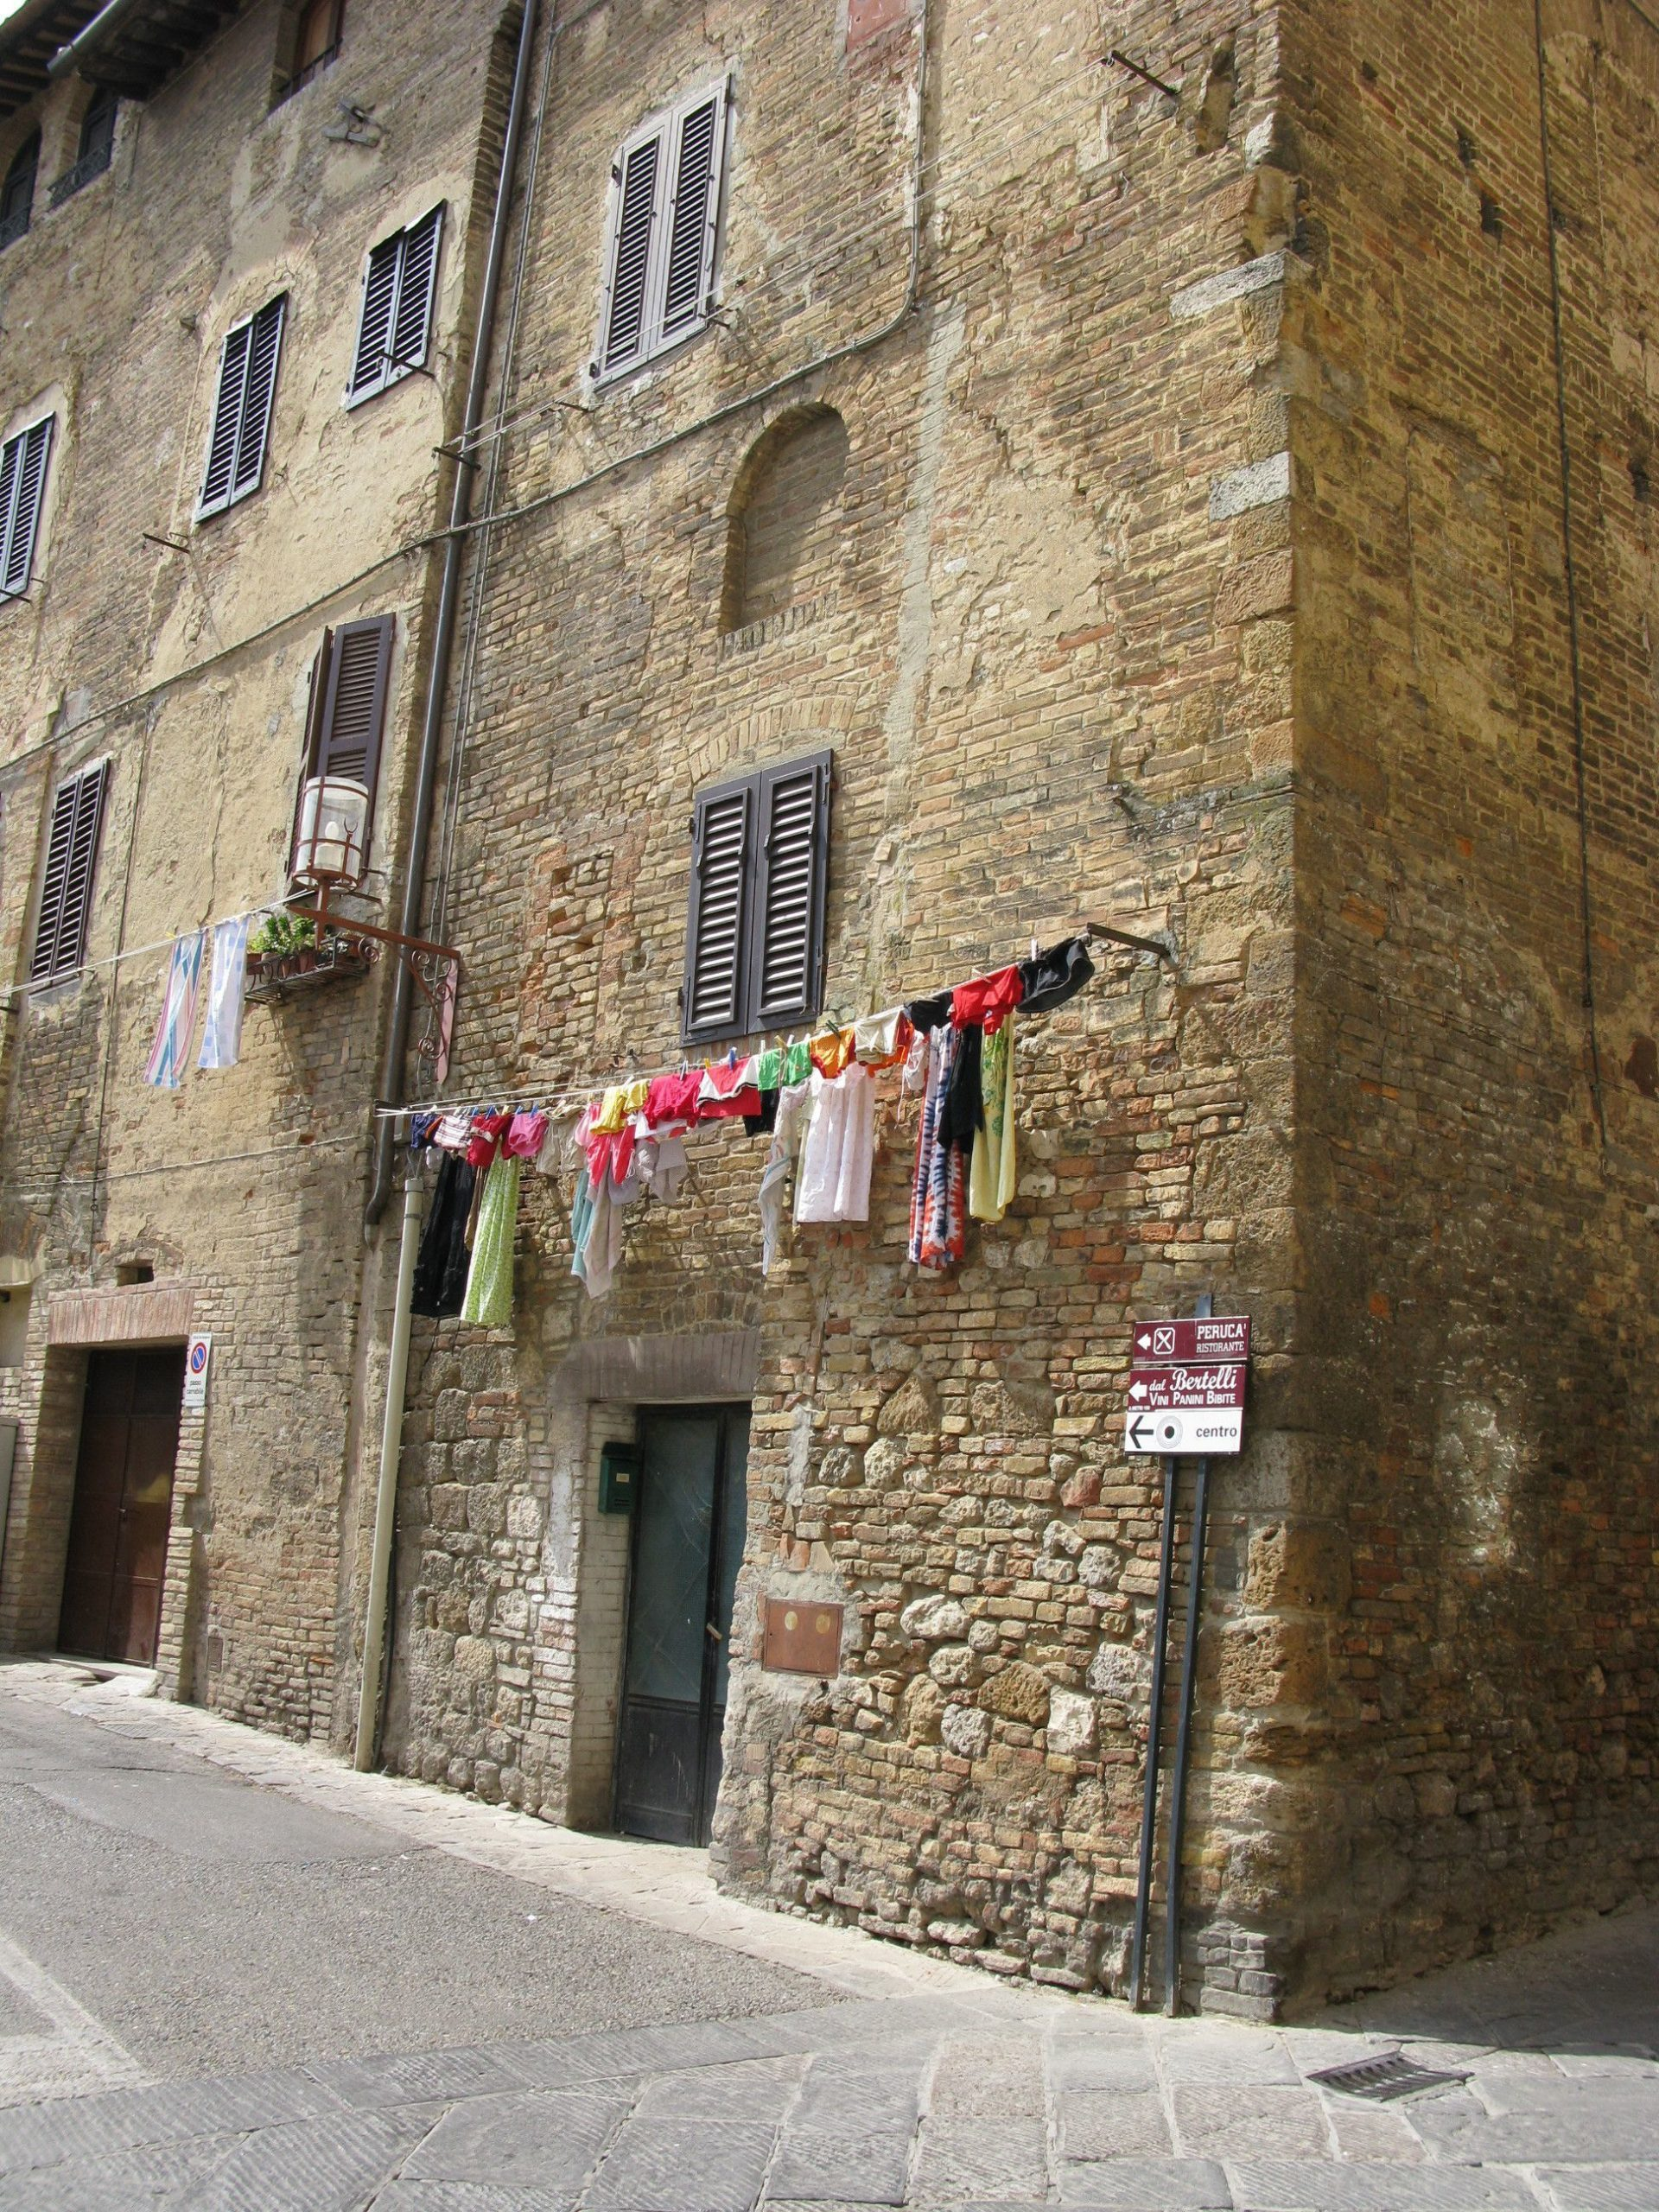 Tuscany Villas Photo Contest Entry  'Clever Clotheslines